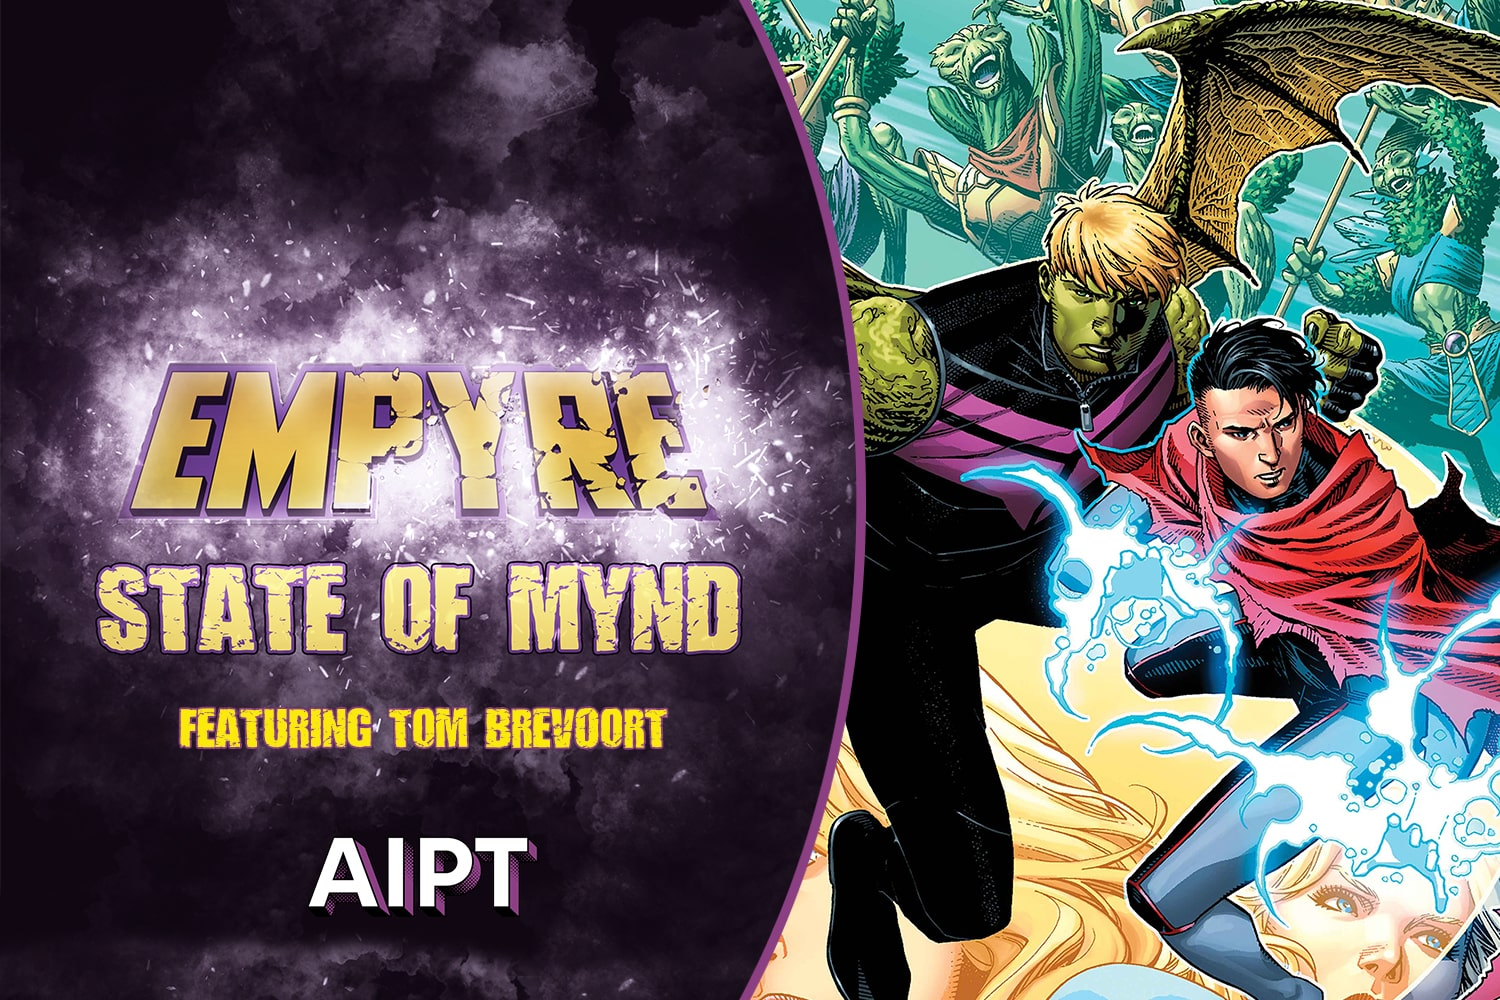 Get the scoop on Empyre, plus exclusive Empyre #5 art and Strikeforce #10 cover and solicitation revealed!